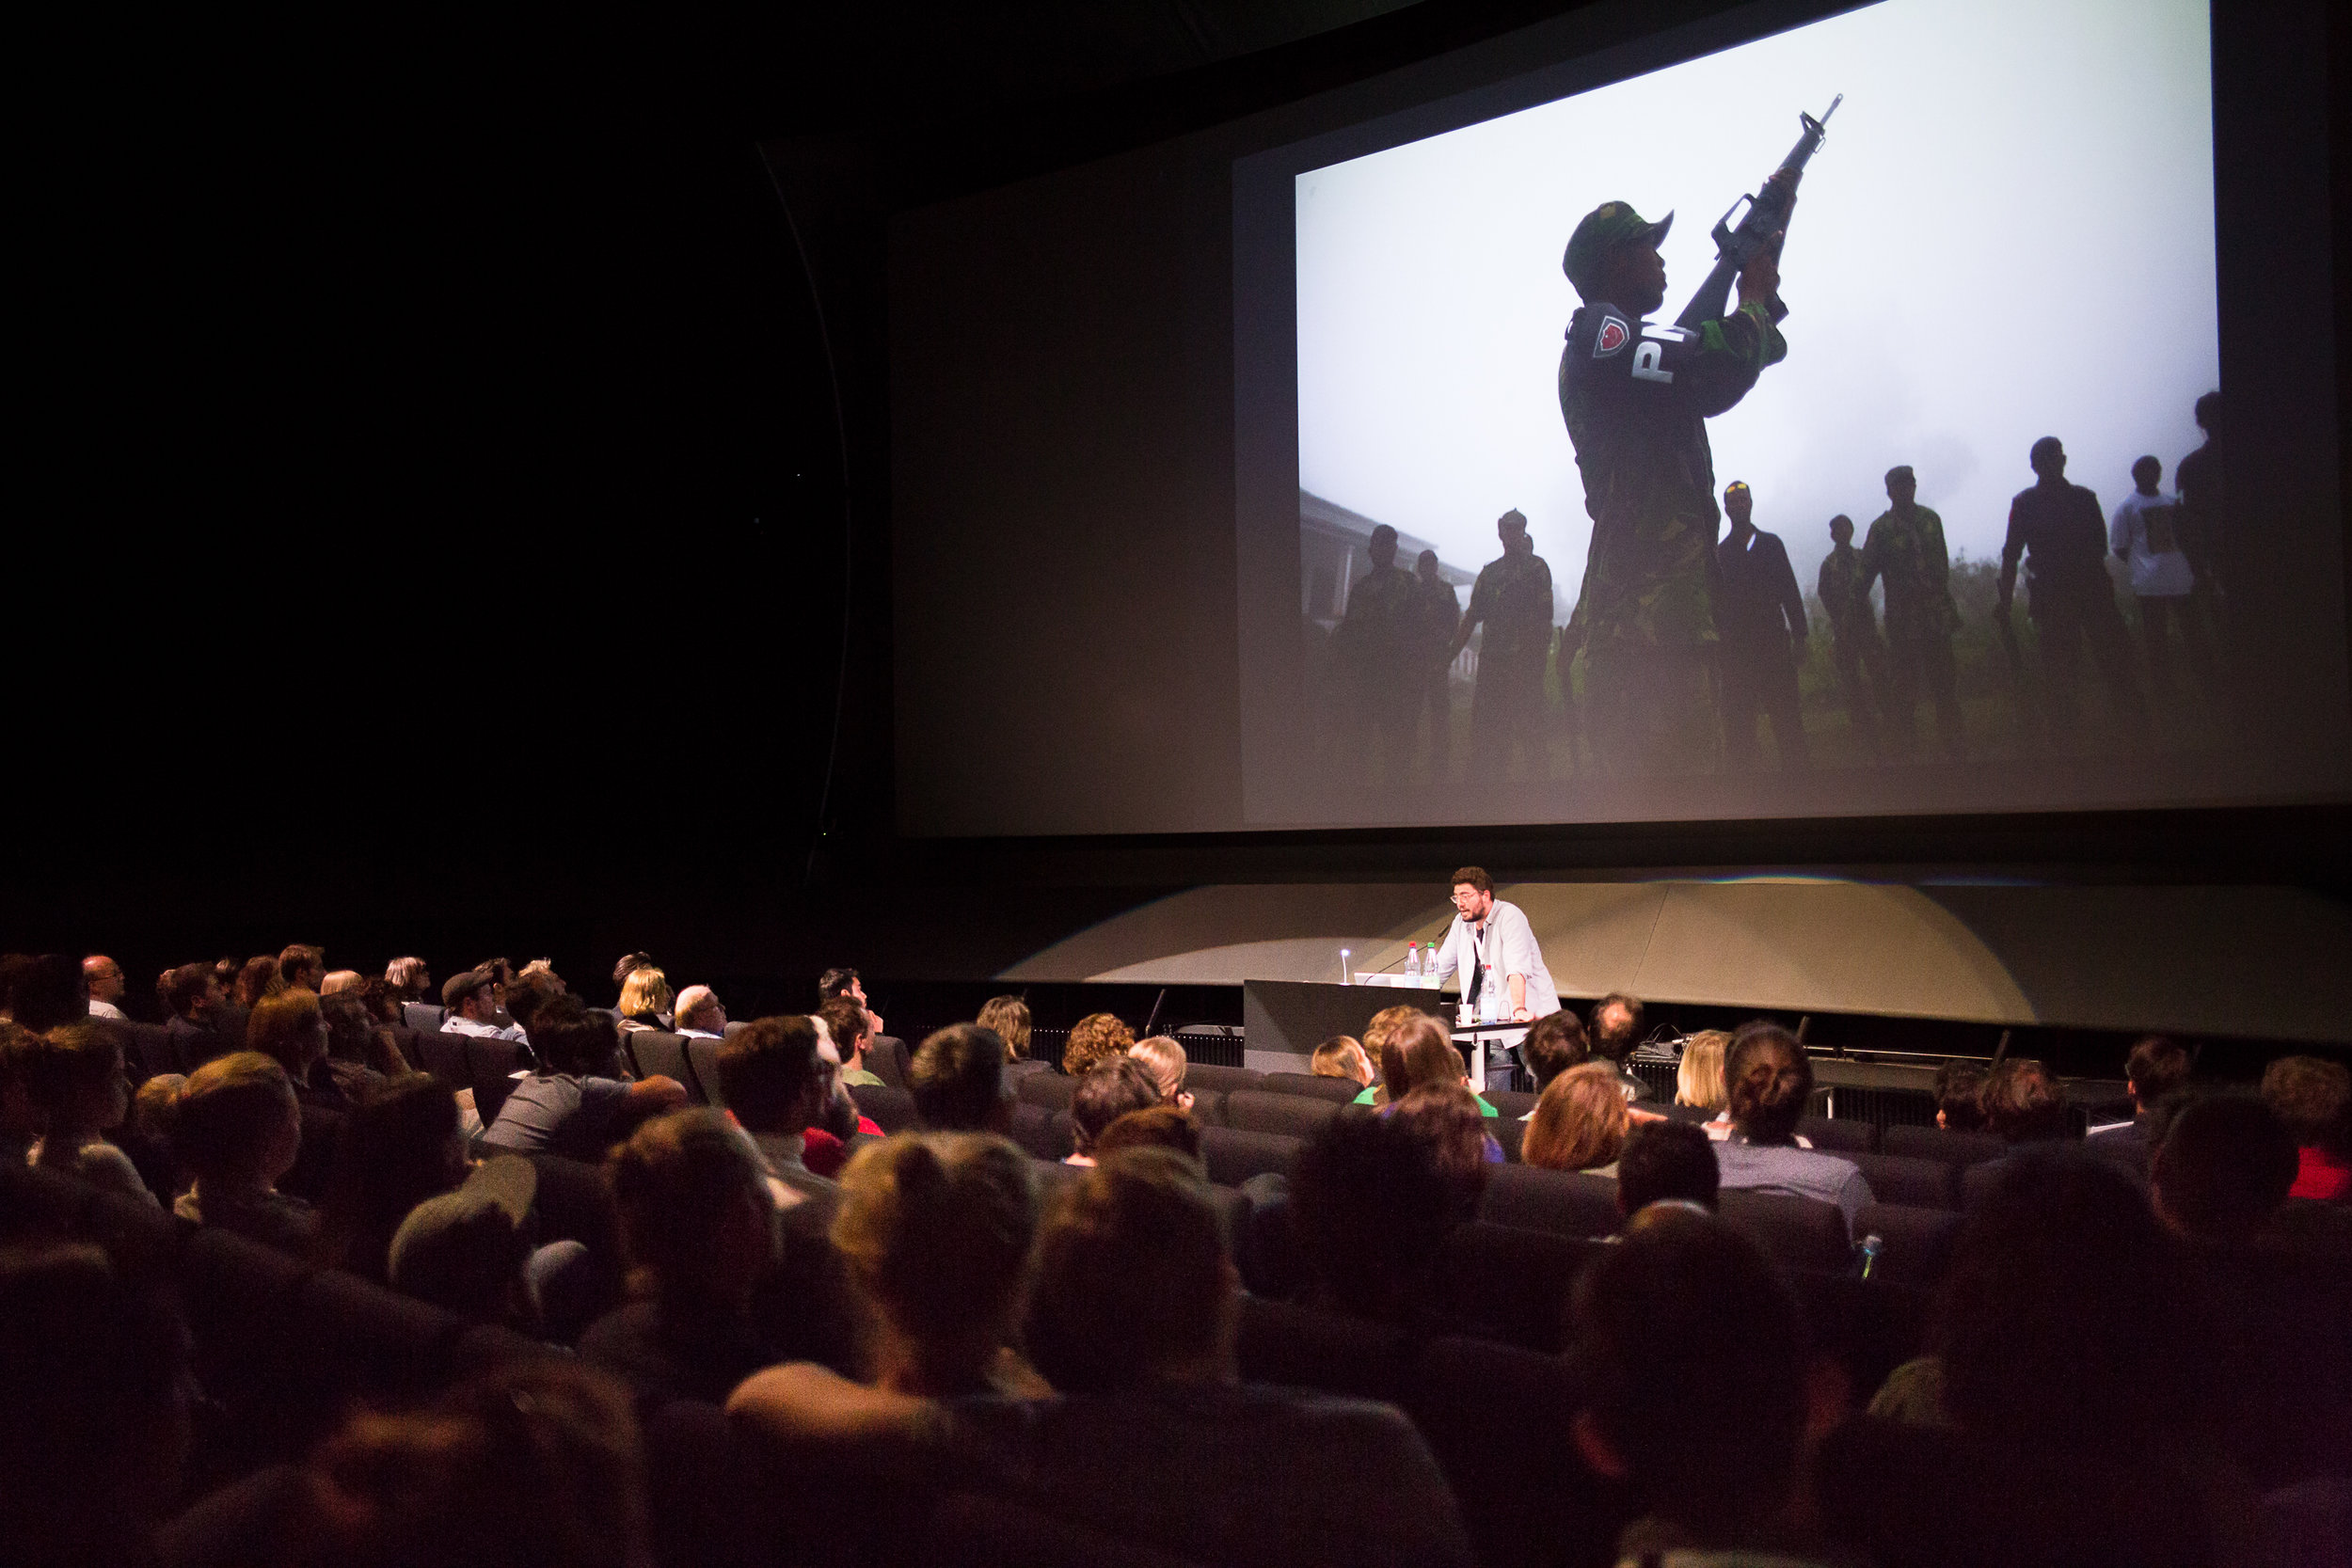 Keynote lecture during Lumix Festival in Hannover 2016. Photo by Maria Rohweder